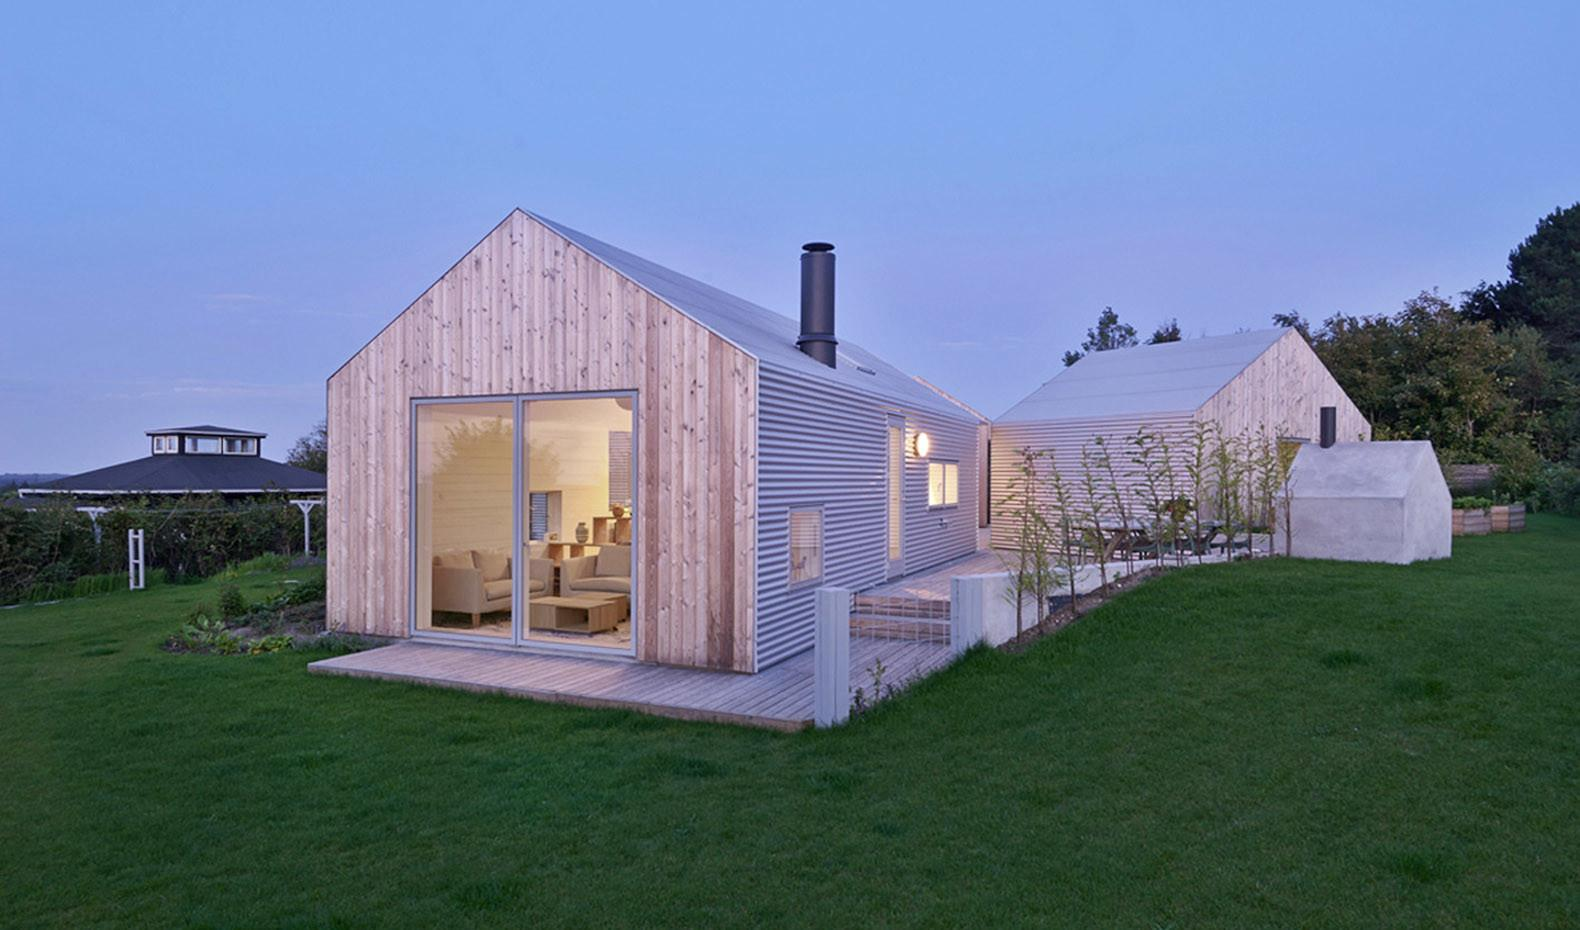 Five Small Buildings Shared Courtyard Create